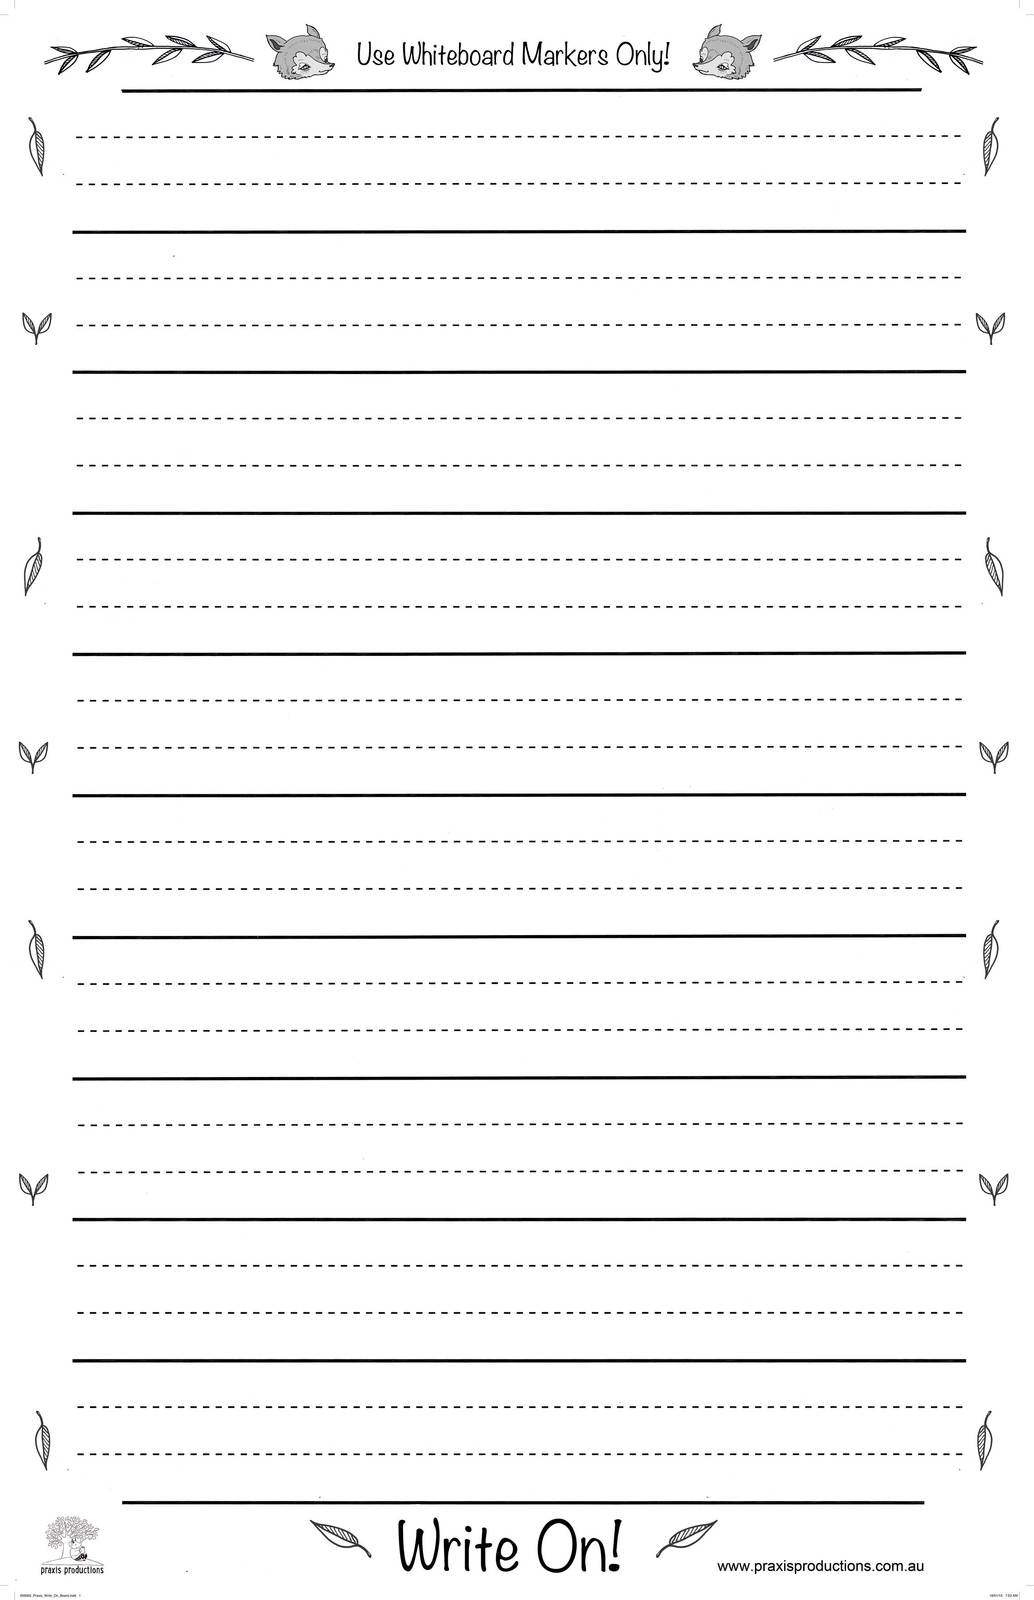 Write On - Large Laminated Dotted Thirds Chart - Praxis Productions ...